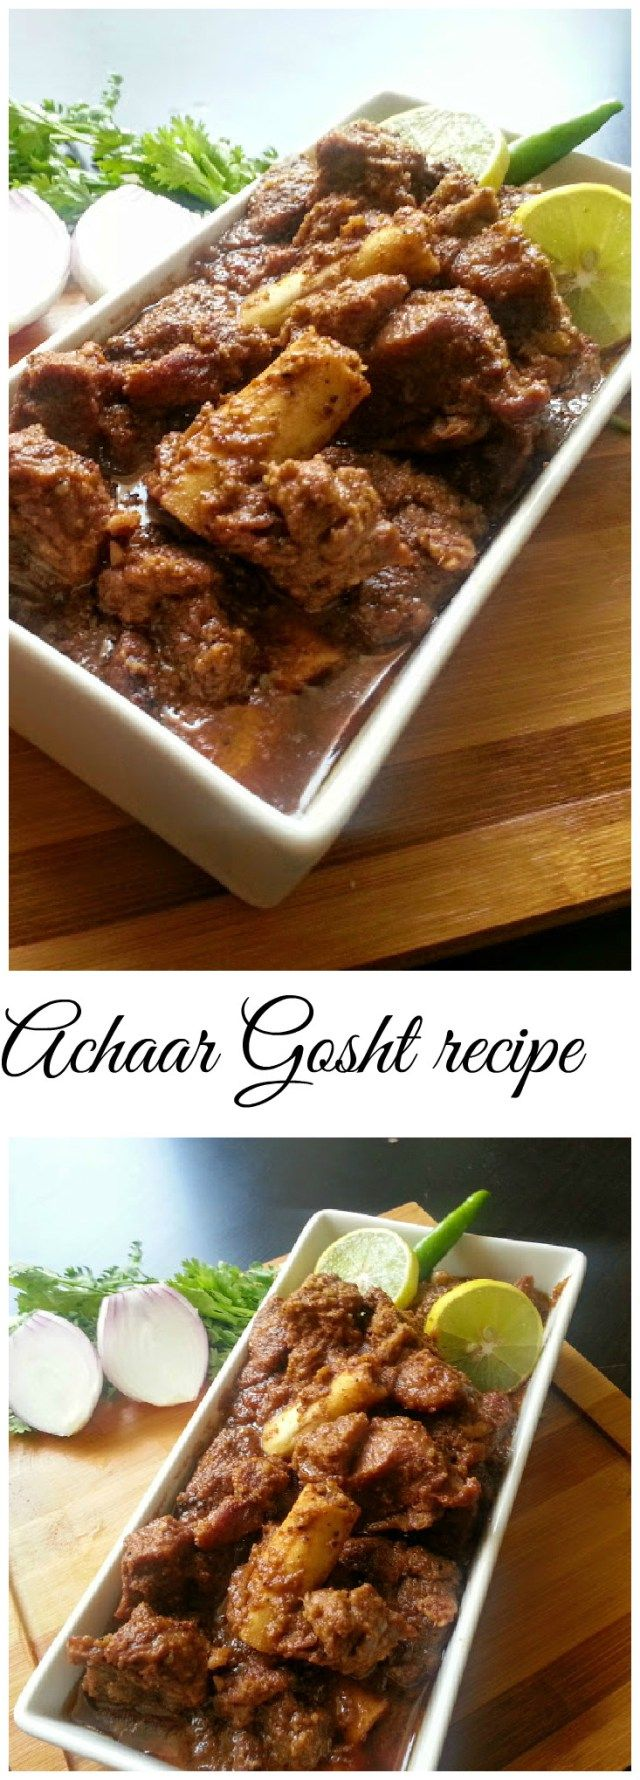 207 best Meat images on Pinterest | Pakistani recipes, Indian food ...